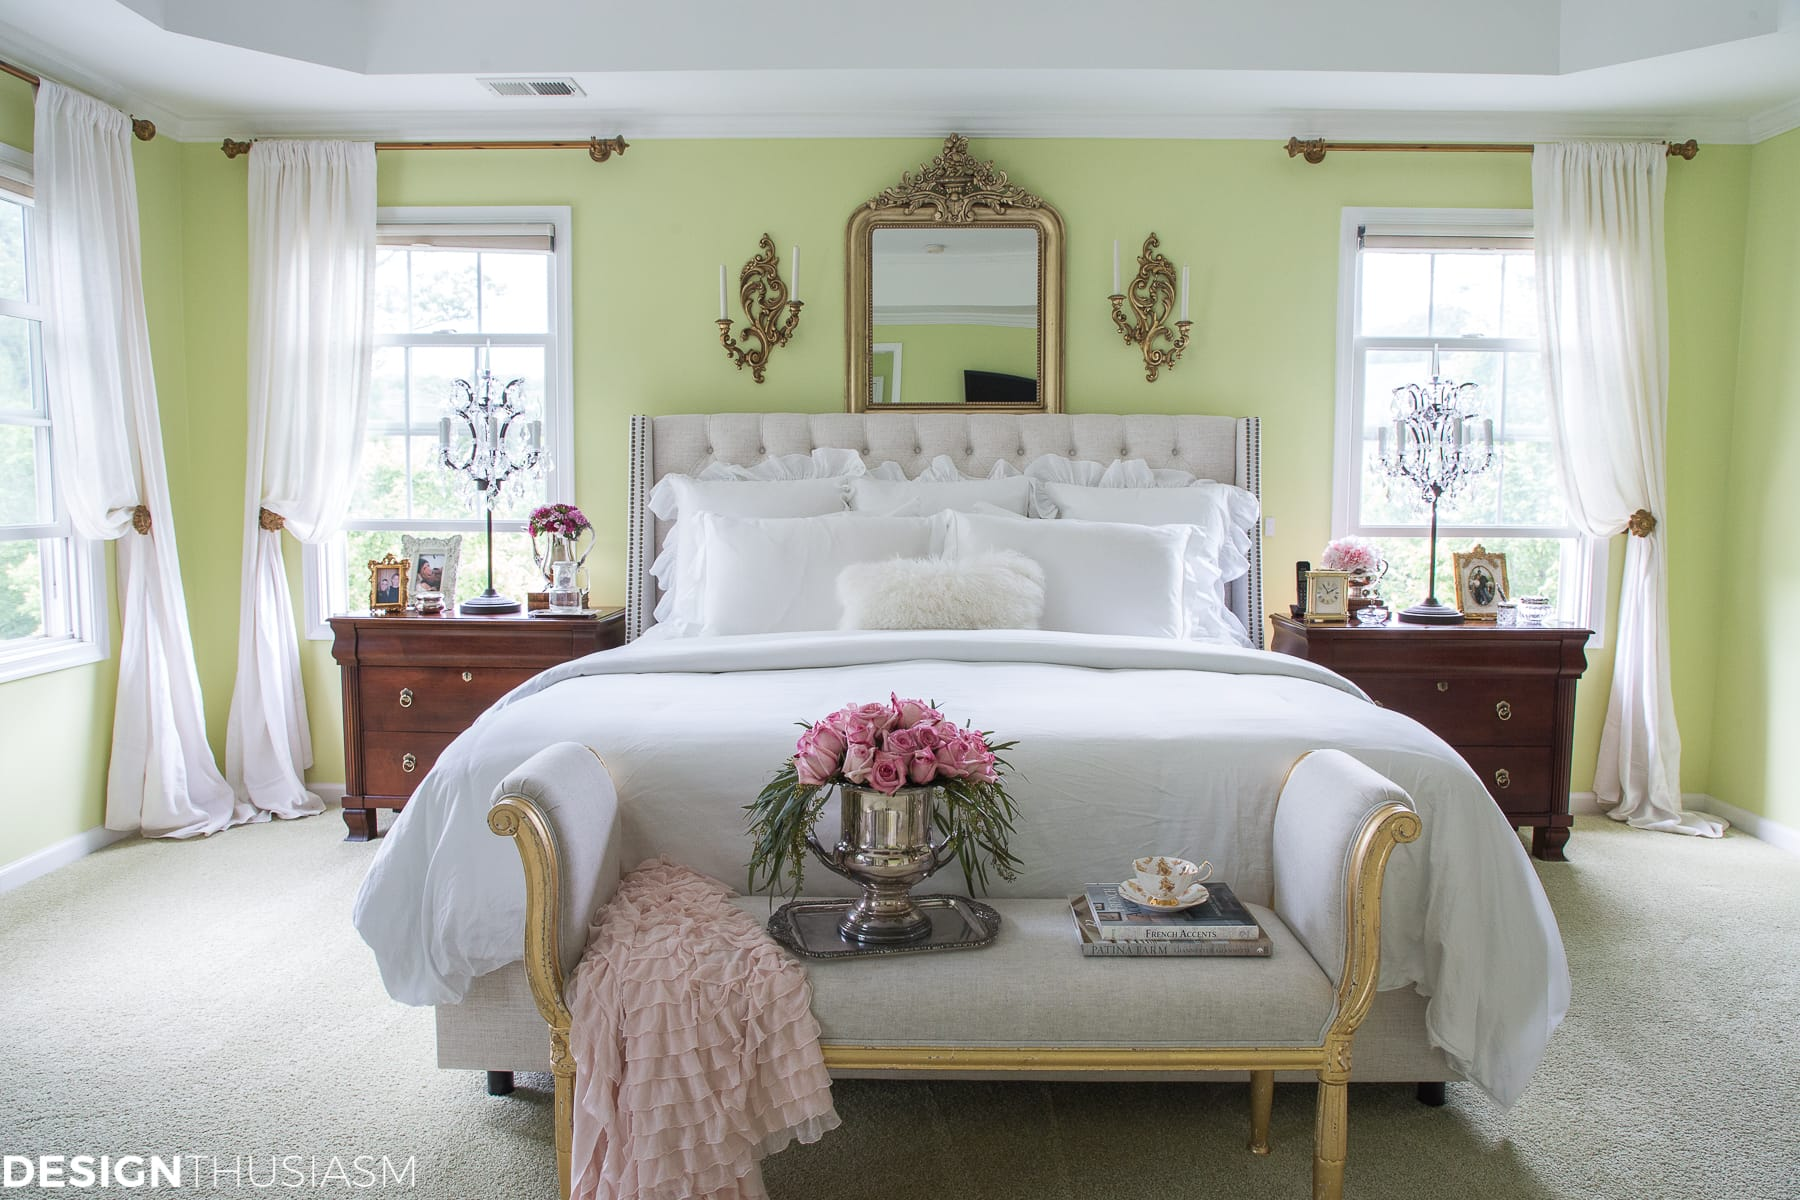 Master Bedroom Ideas: 10 Tips for Creating a Dreamy Updated Retreat - designthusiasm.com